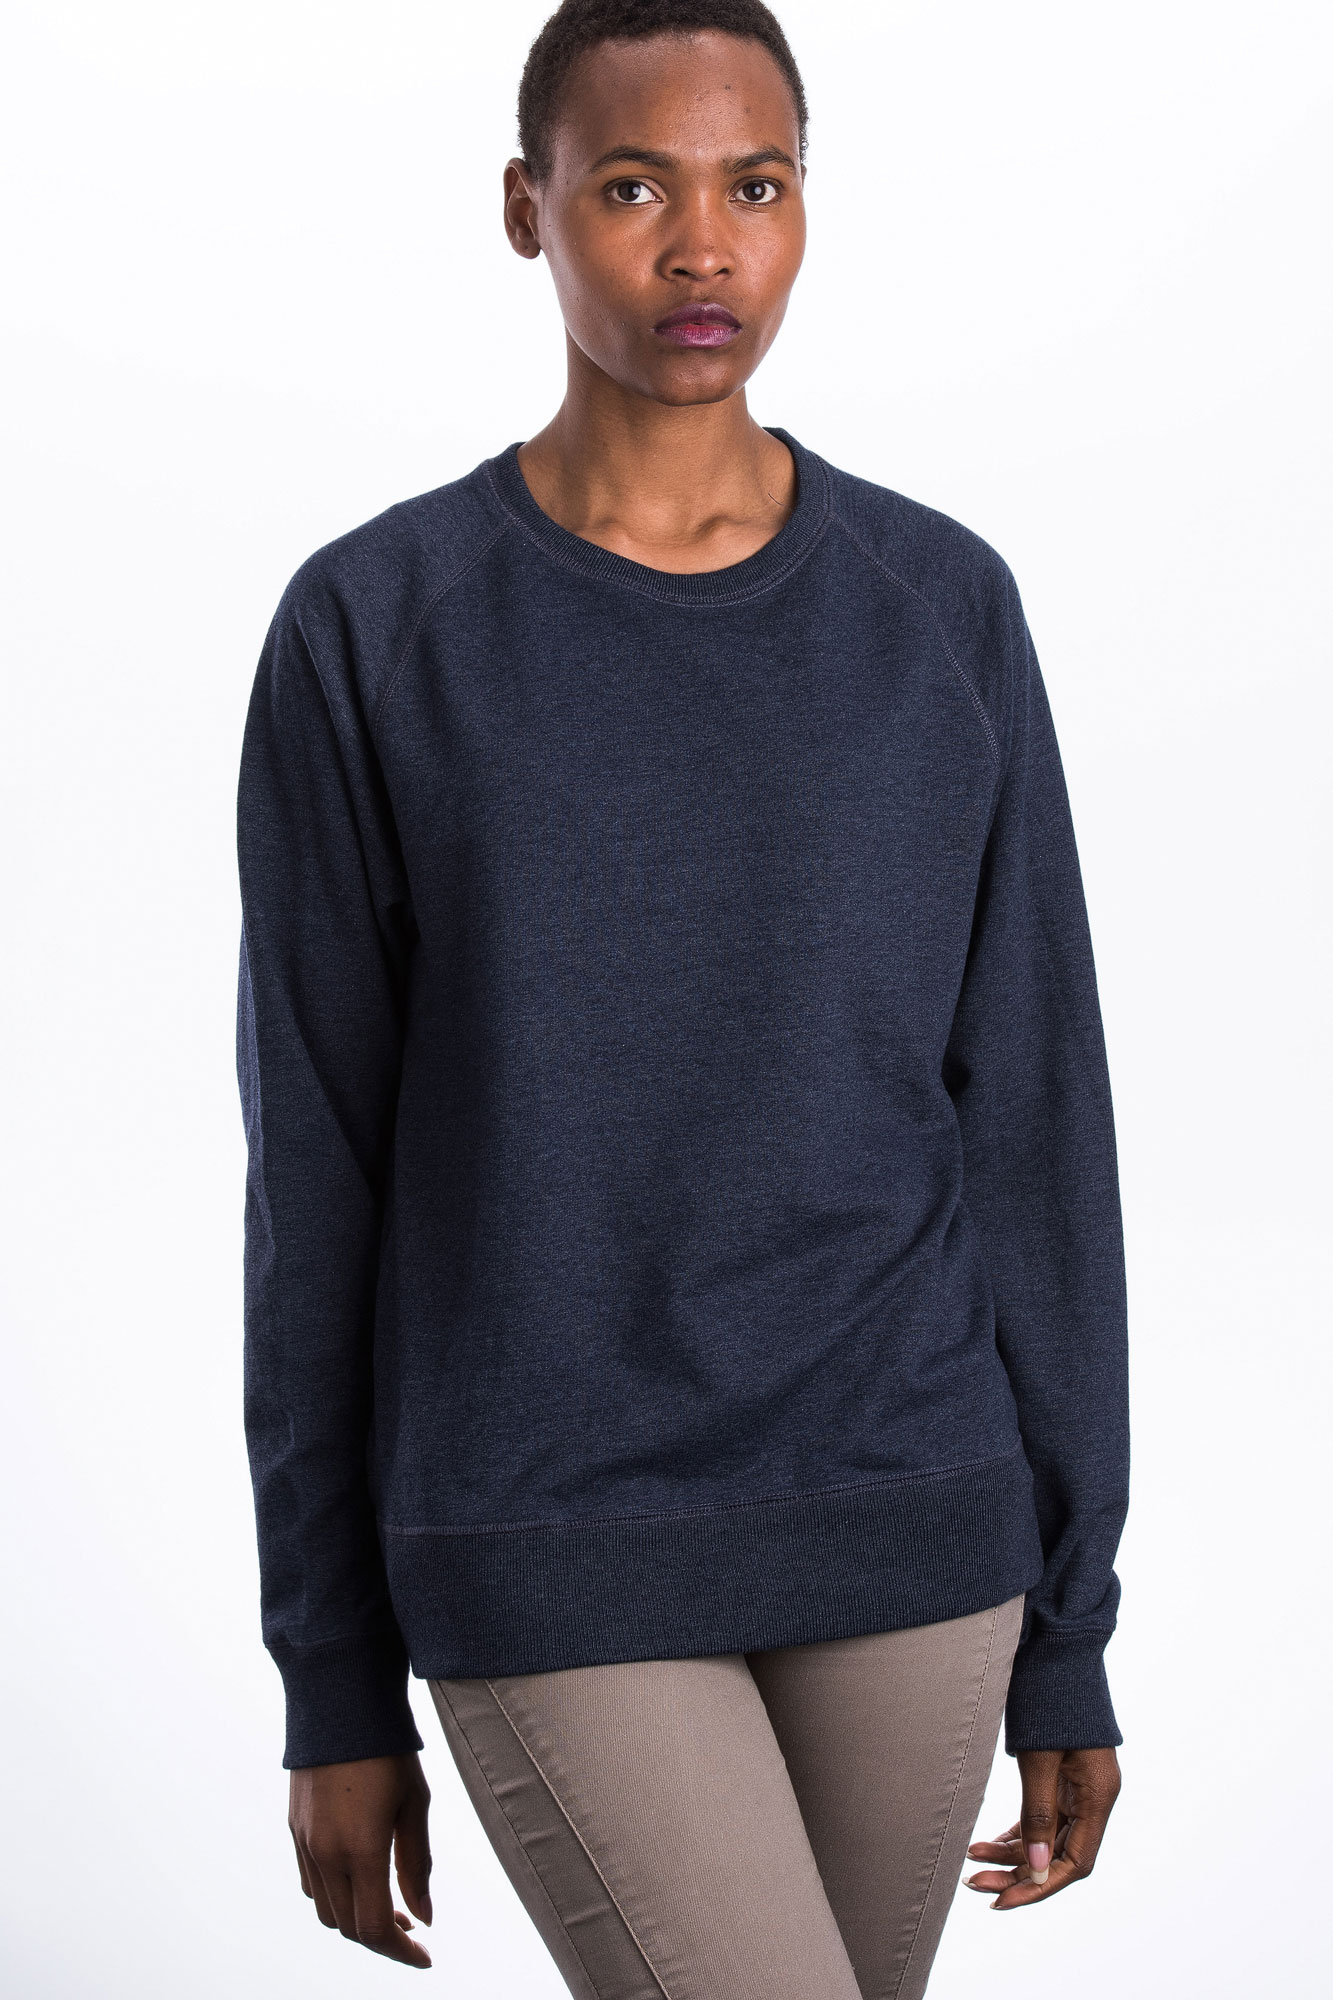 W-SA40-Pullover-Recycled-Fair-Trade-Kleidung-Melange-Navy